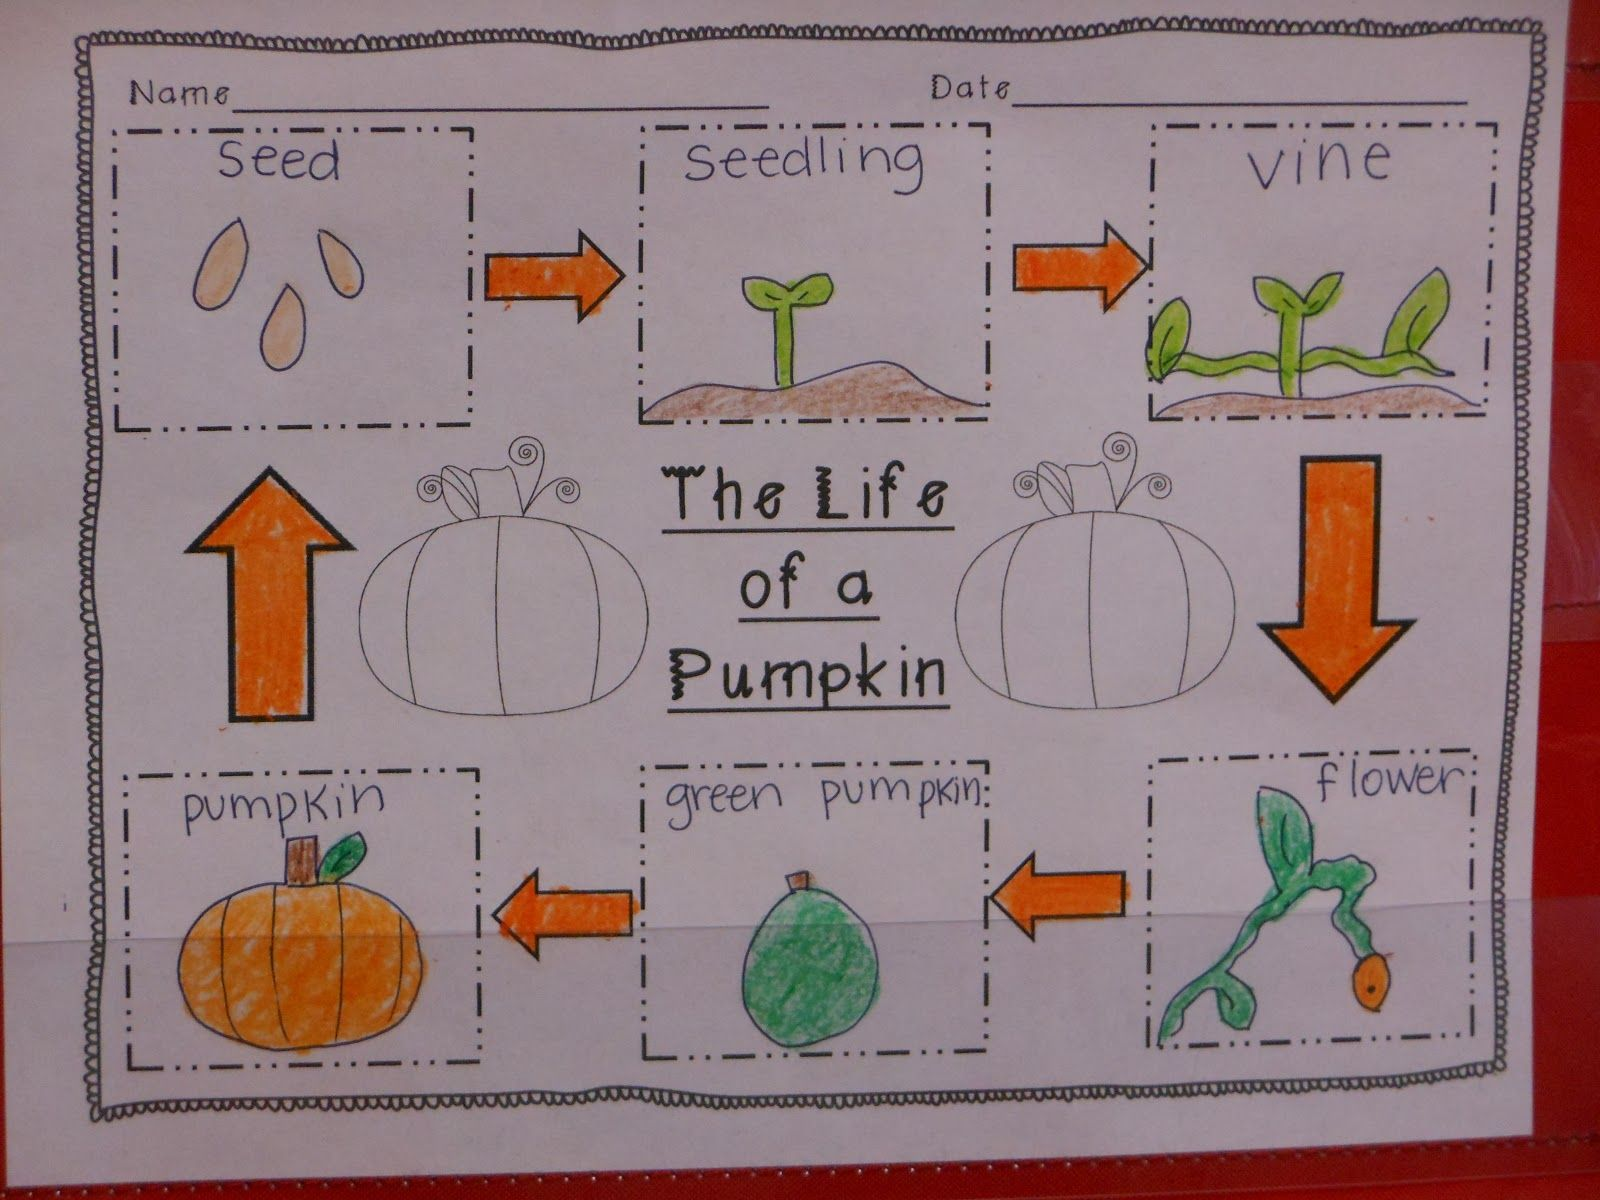 Pumpkin Life Cycle Diagram Of Worksheet And Wiring A For The Love First Grade Great Investigation Rh In Pinterest Com